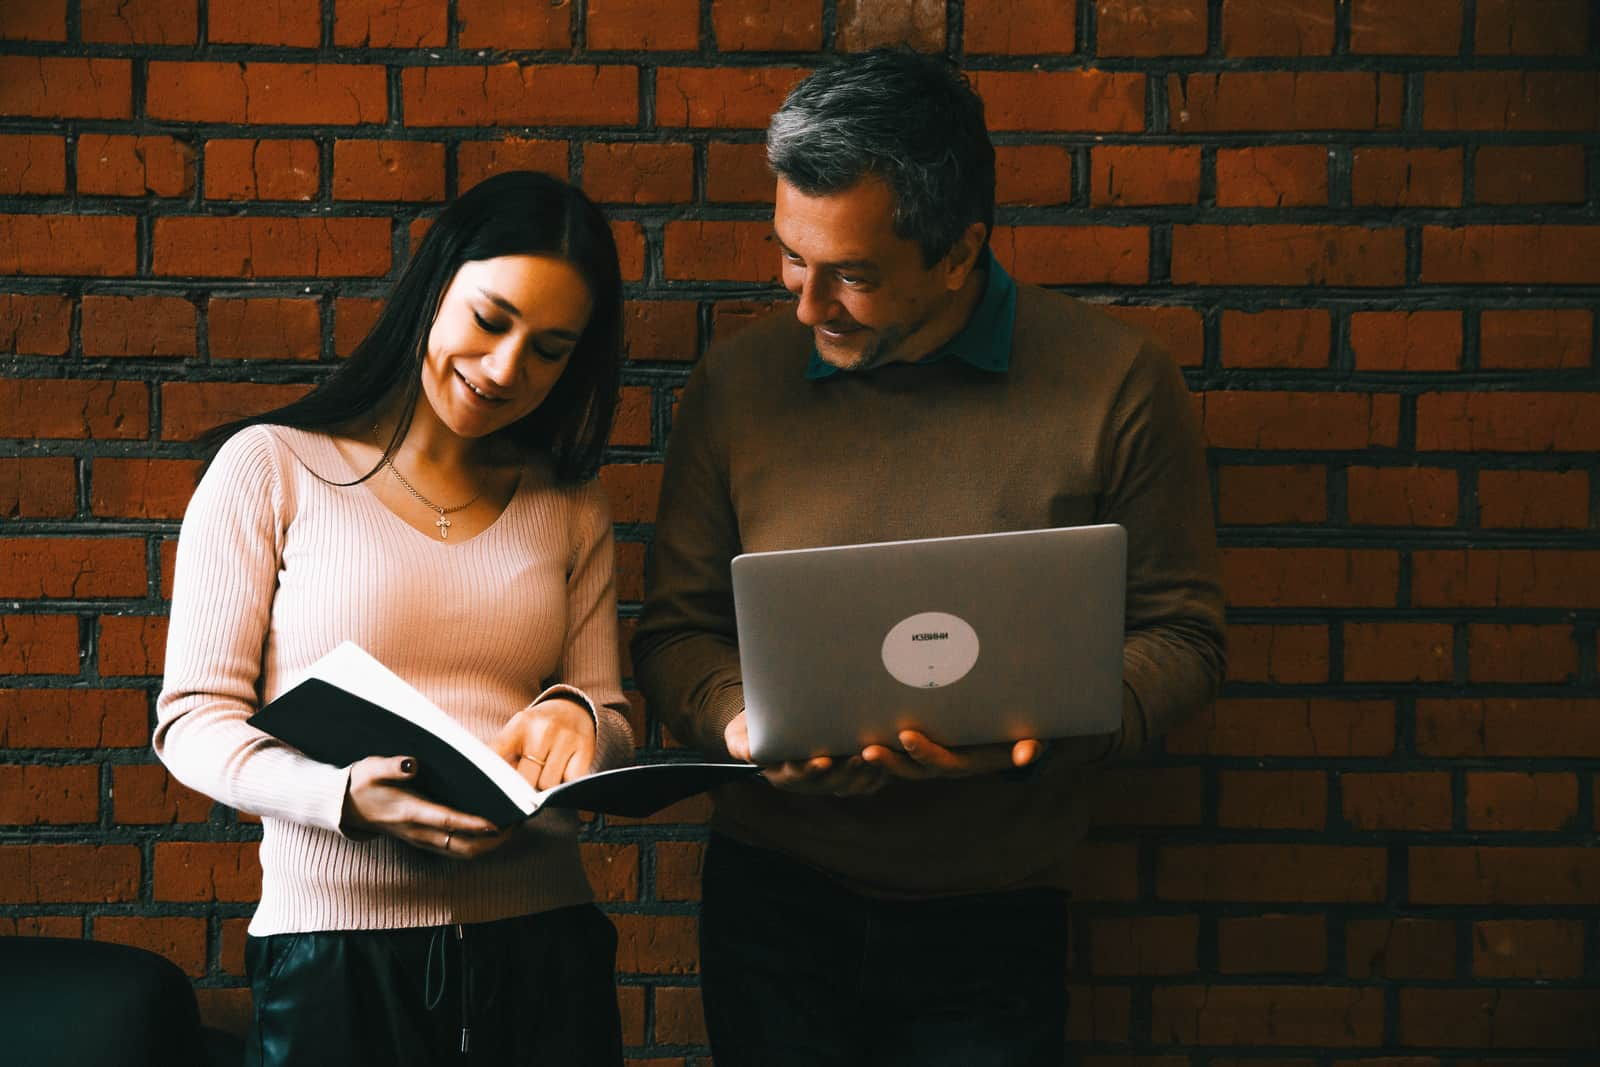 man and woman looking at notes researched on the laptop while standing near brick walls